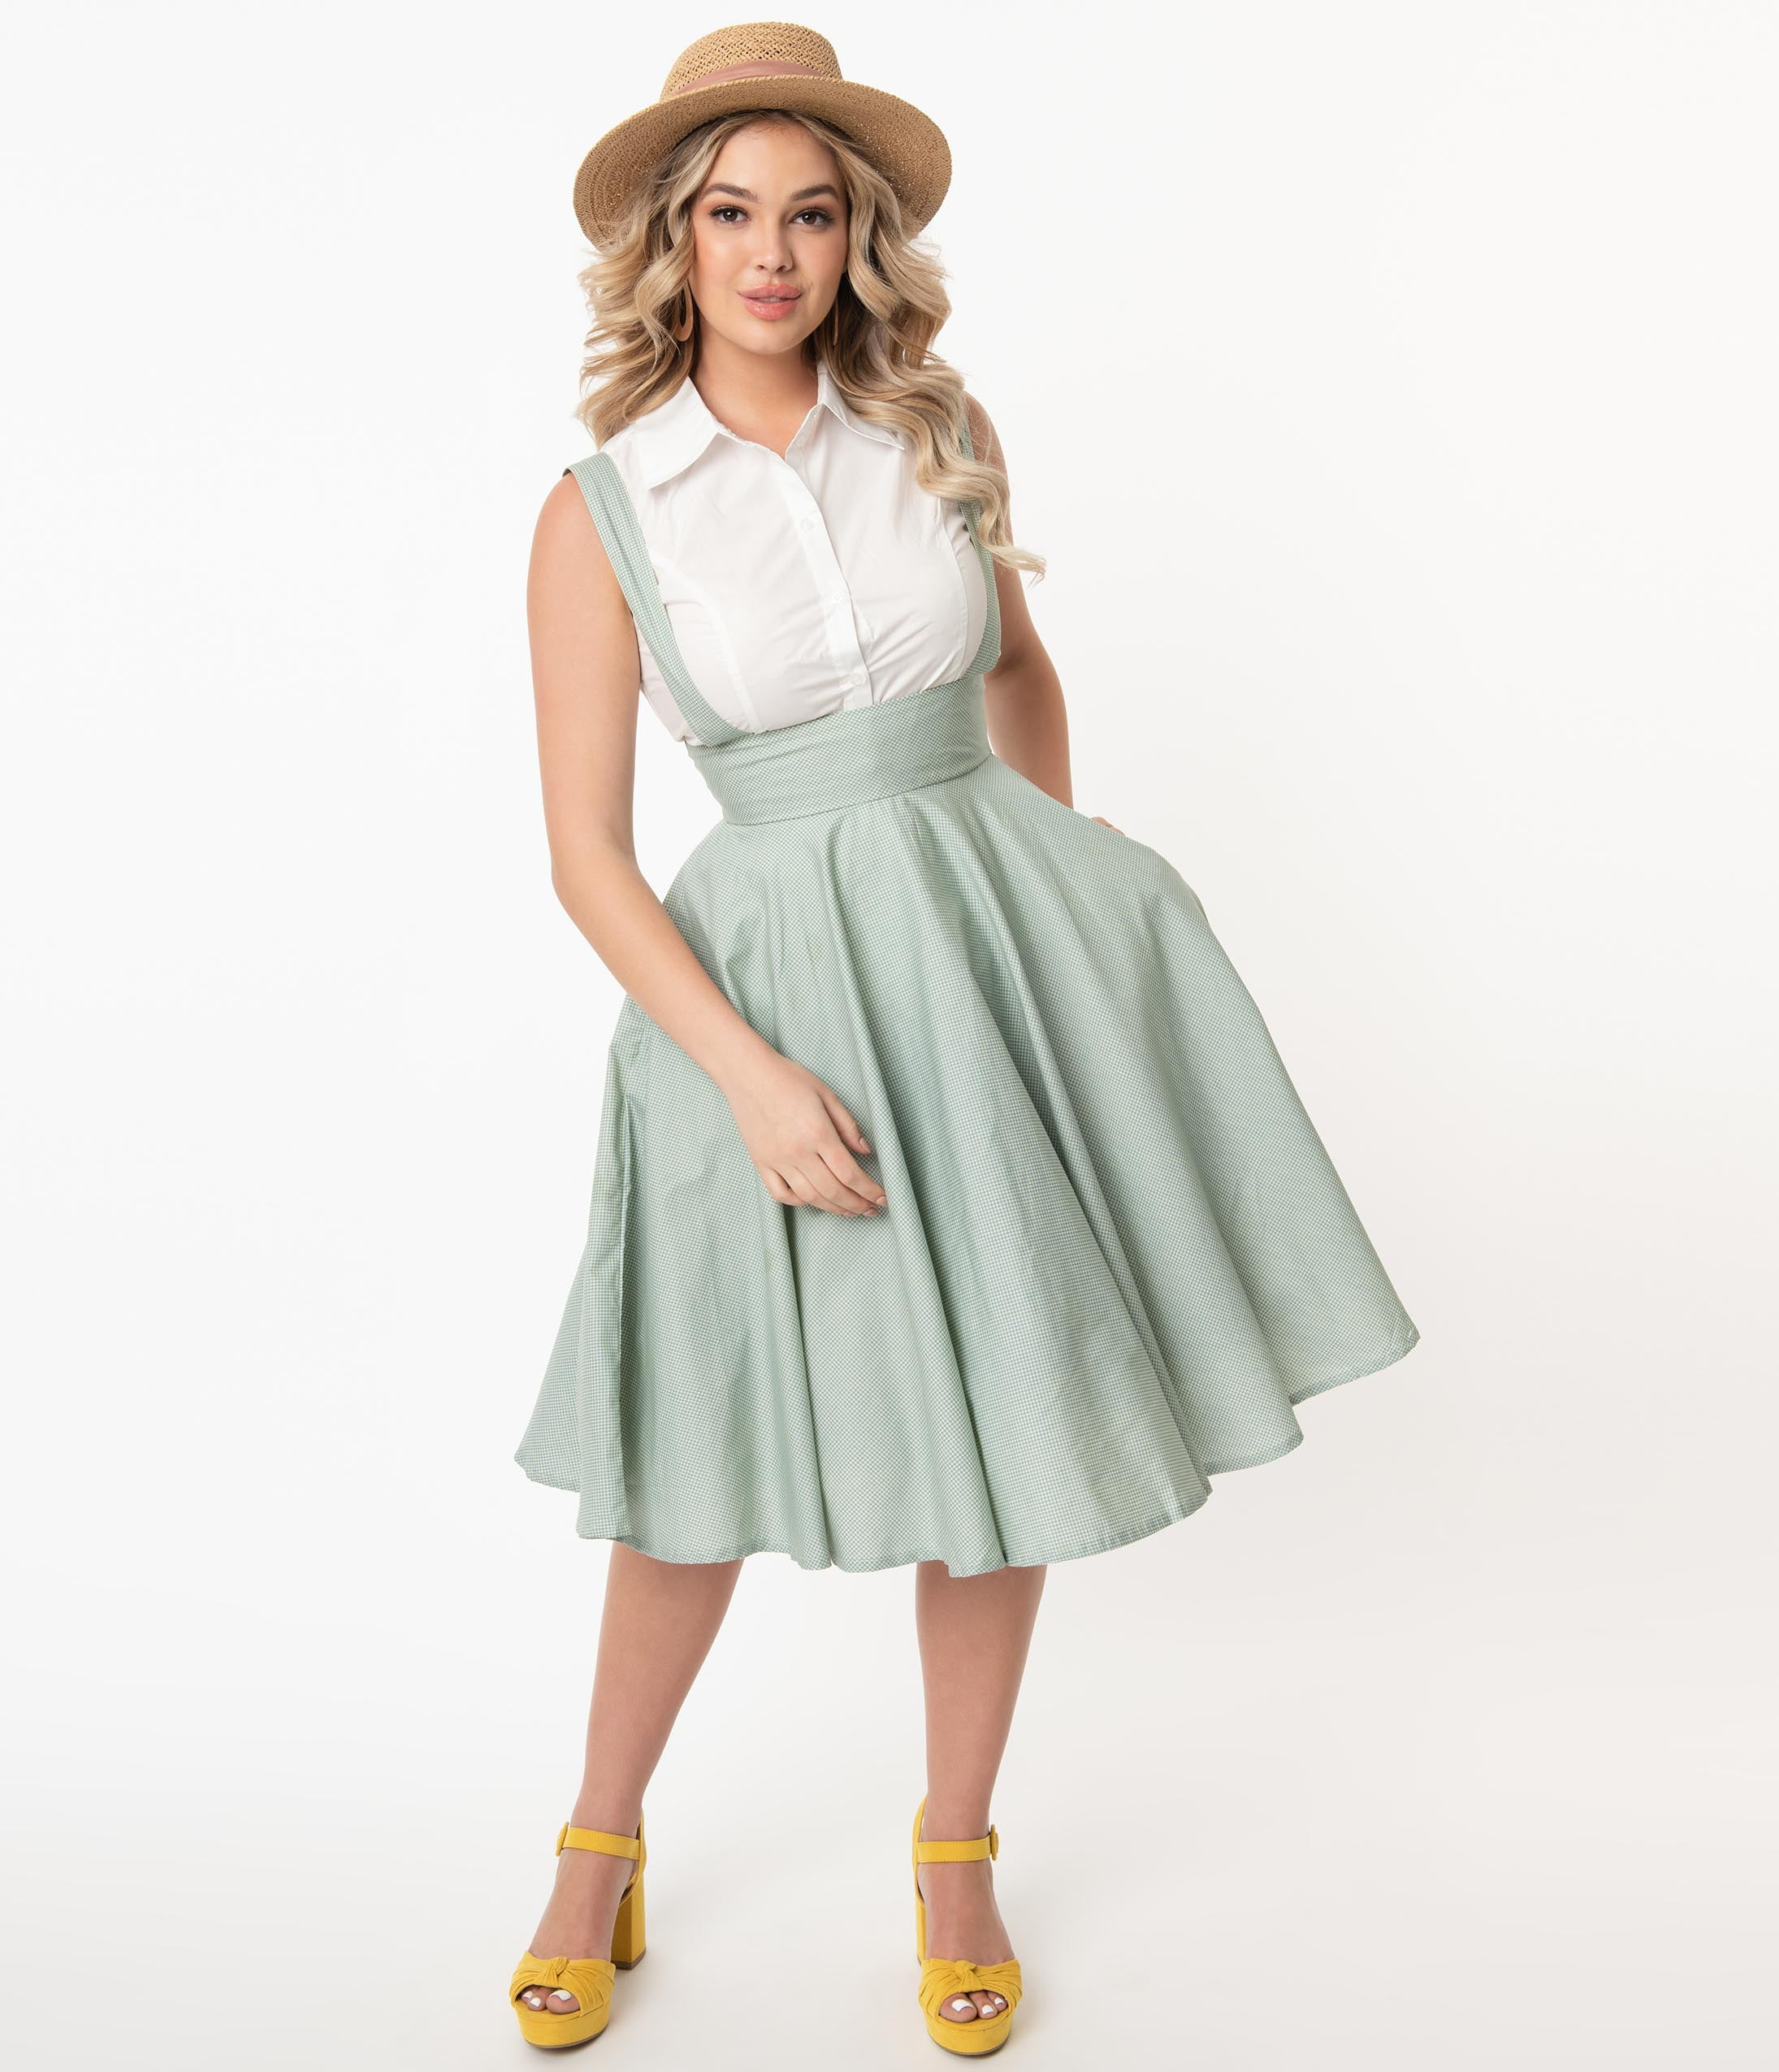 1950s Swing Skirt, Poodle Skirt, Pencil Skirts Magnolia Place Mint Gingham Abby Pinafore Skirt $58.00 AT vintagedancer.com